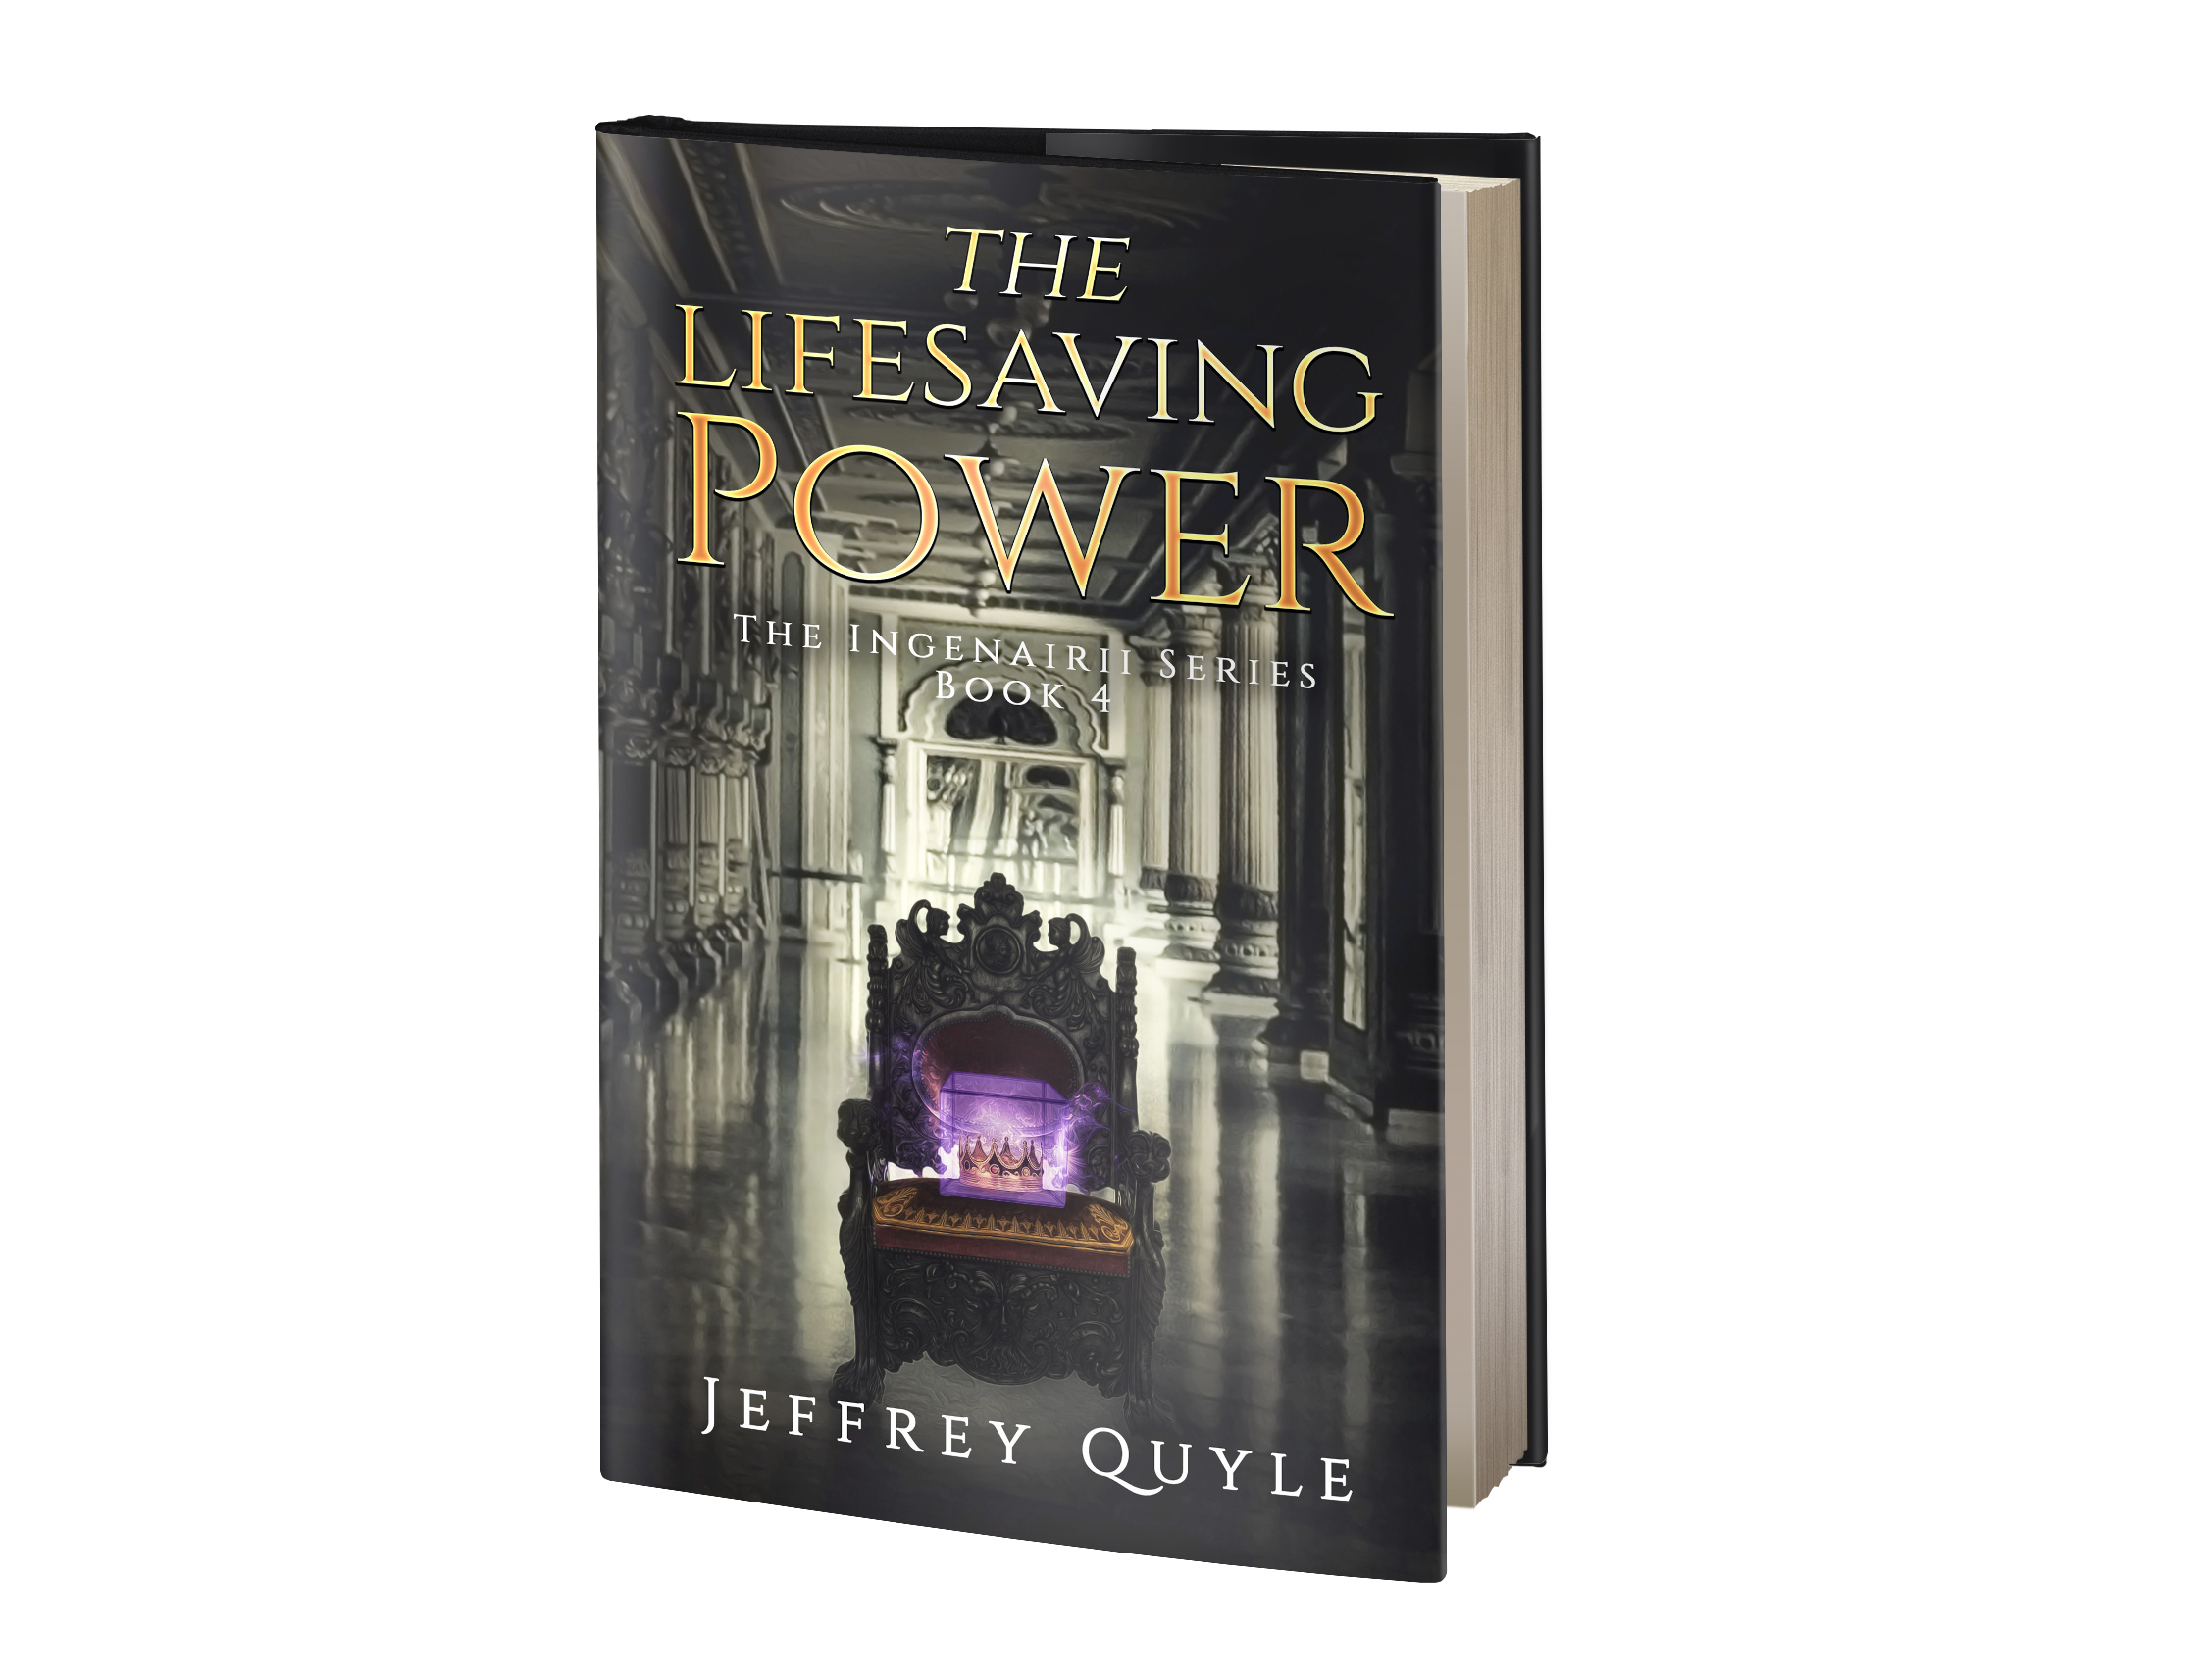 The Lifesaving Power book cover